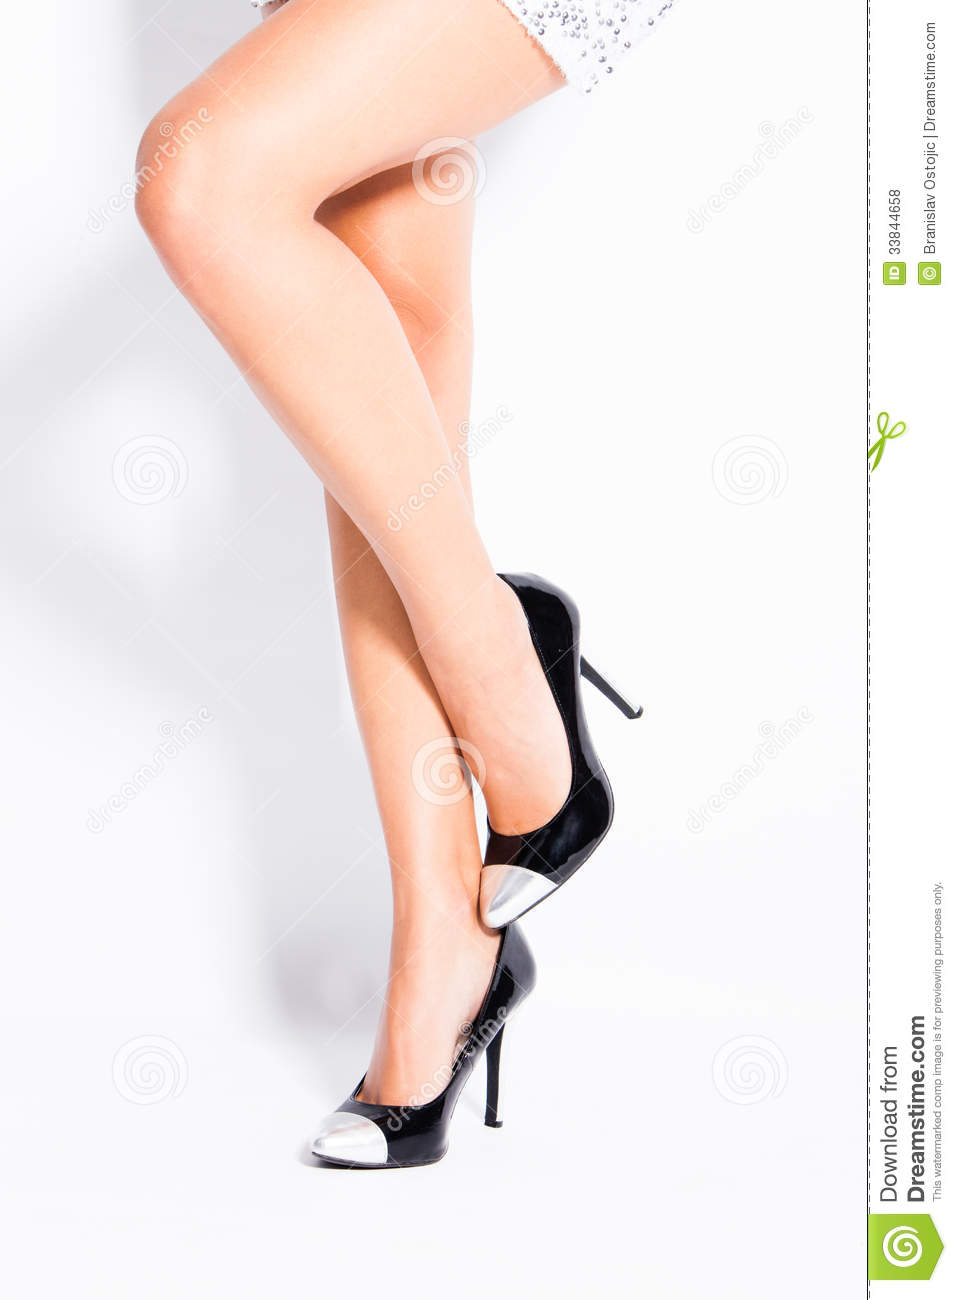 High Heel Shoes Royalty Free Stock Photos   Image  33844658